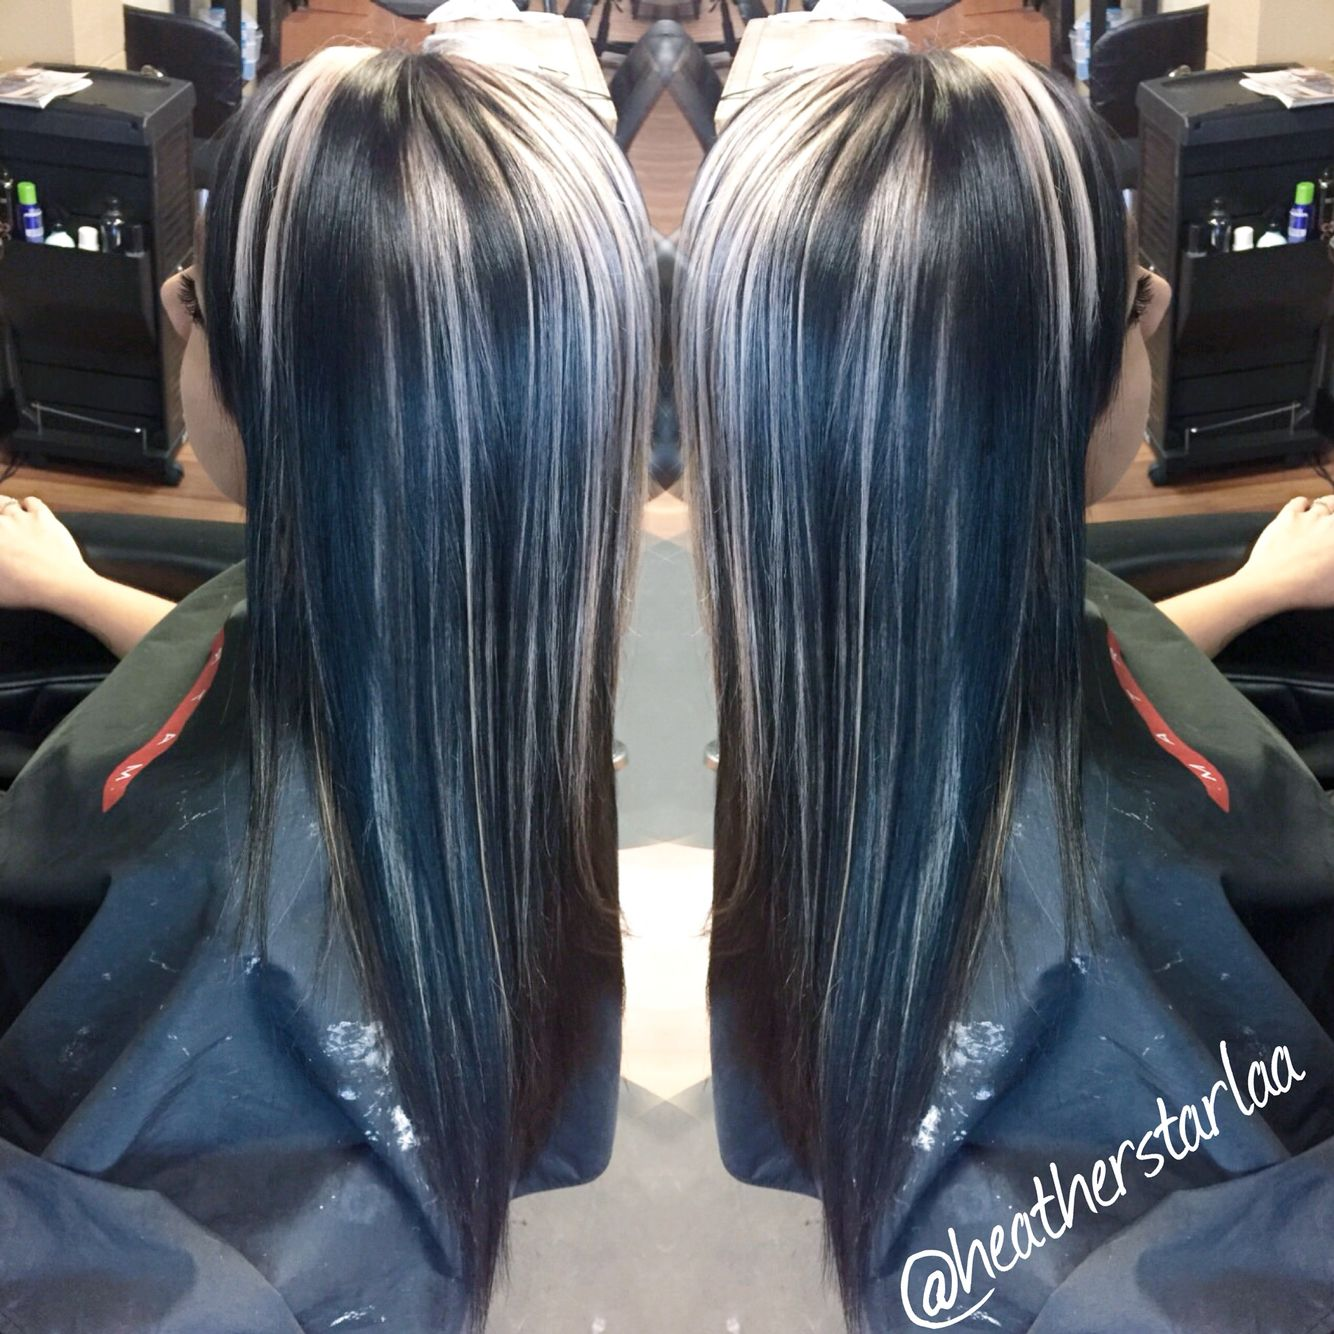 All Over Black Hair With Chunky Platinum Blonde Highlights Black Hair With Blonde Highlights Black Hair With Highlights Hair Highlights